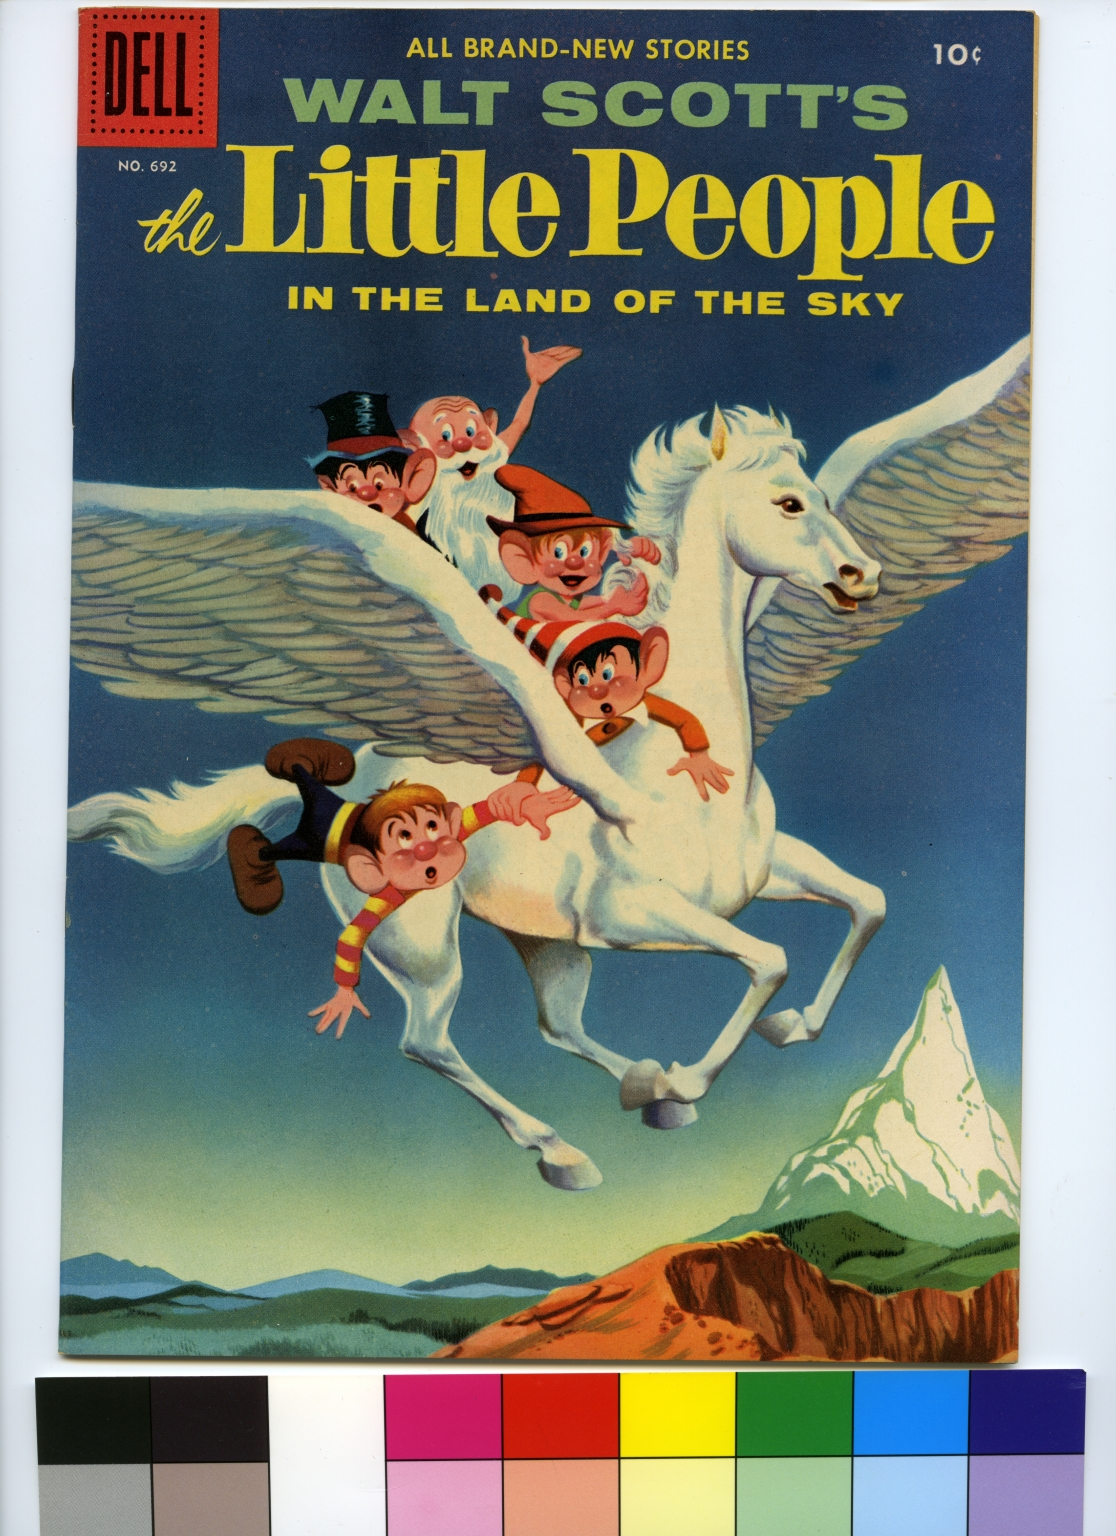 Walt Scott's The Little People in the Land of the Sky